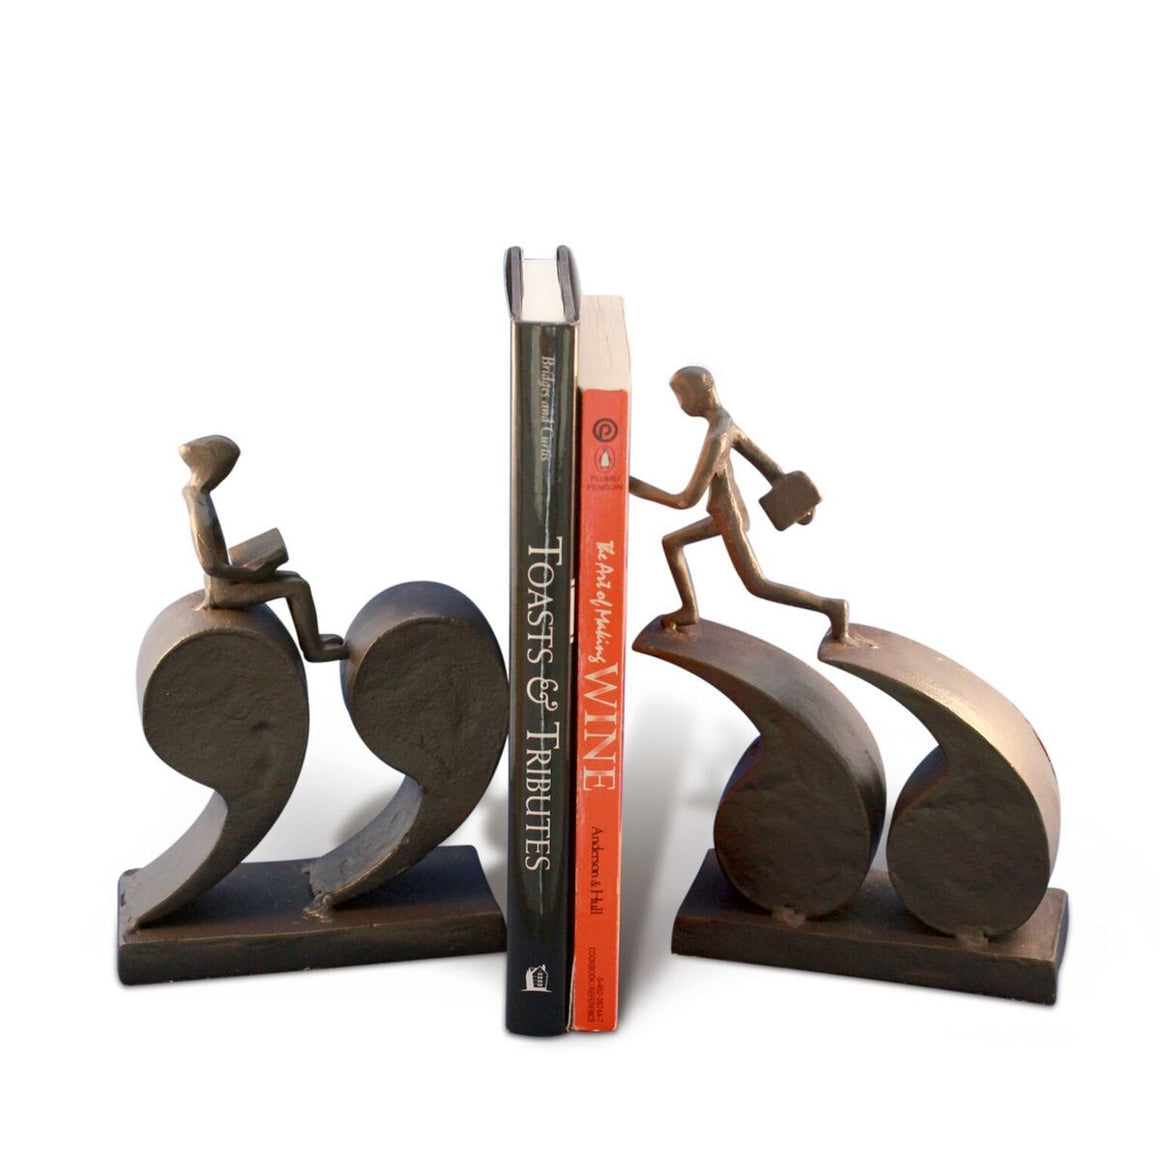 Cast Iron Quotation Runner Bookends - Metal - Book Reading - Library - Rustic Deco Incorporated